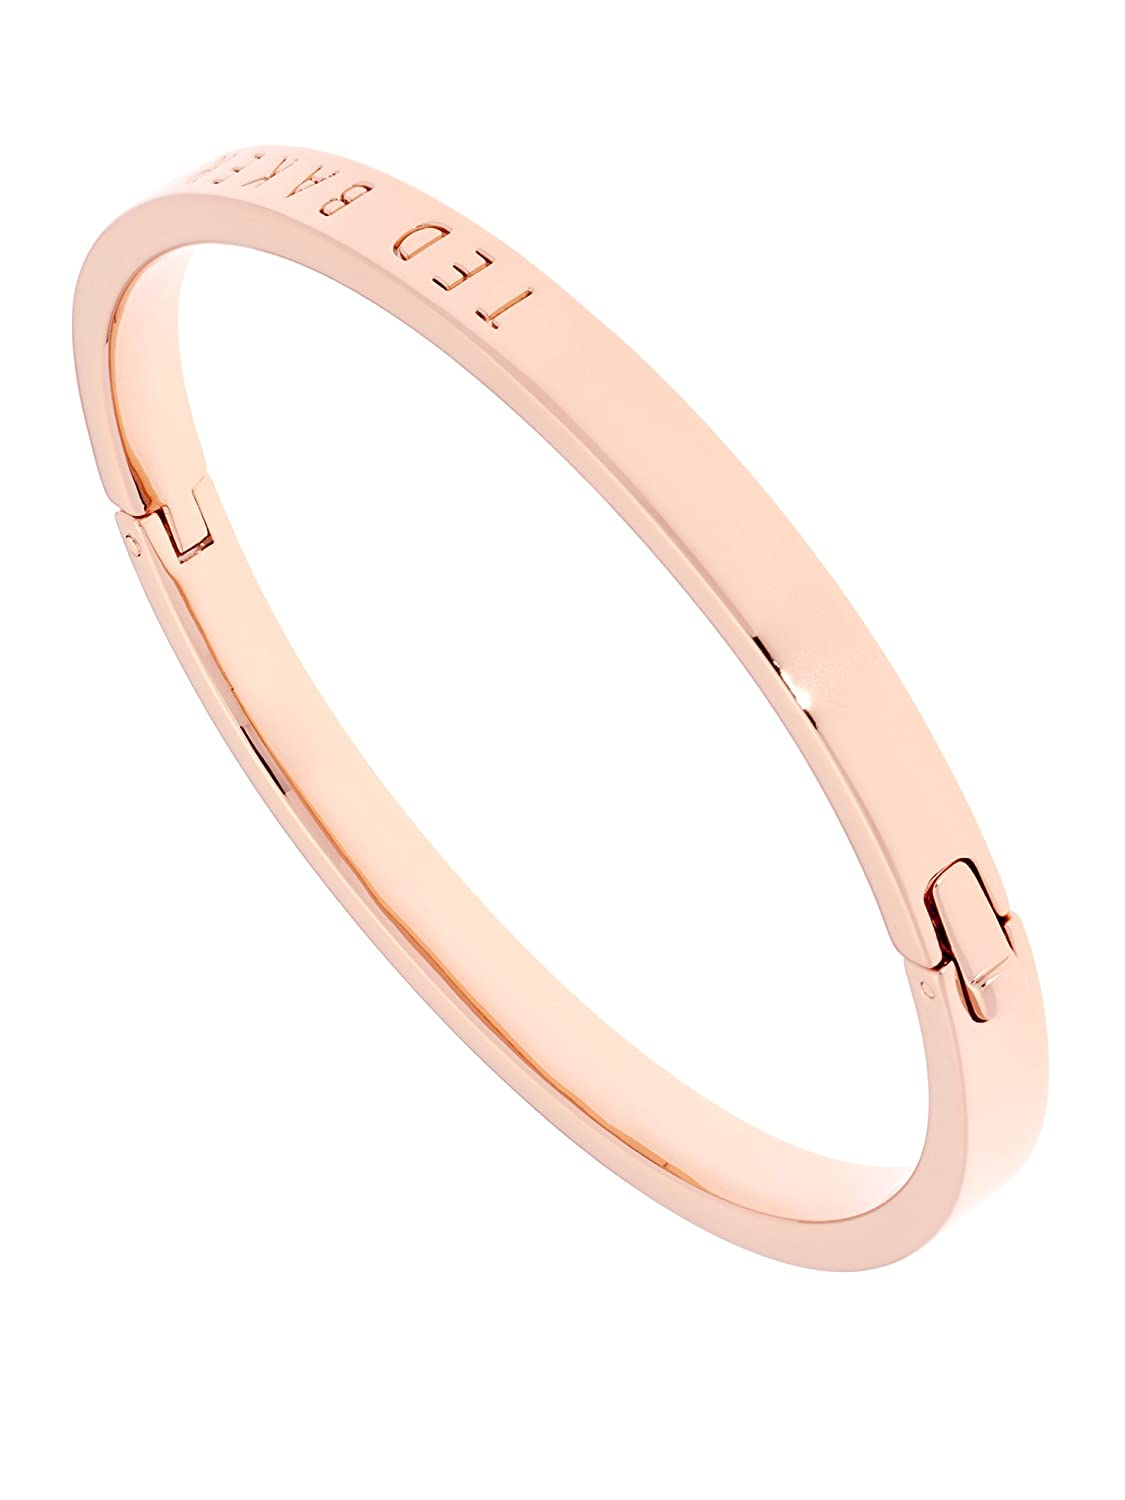 ad56fa889 Ted Baker Clemina Hinged Bangle, Rose Gold